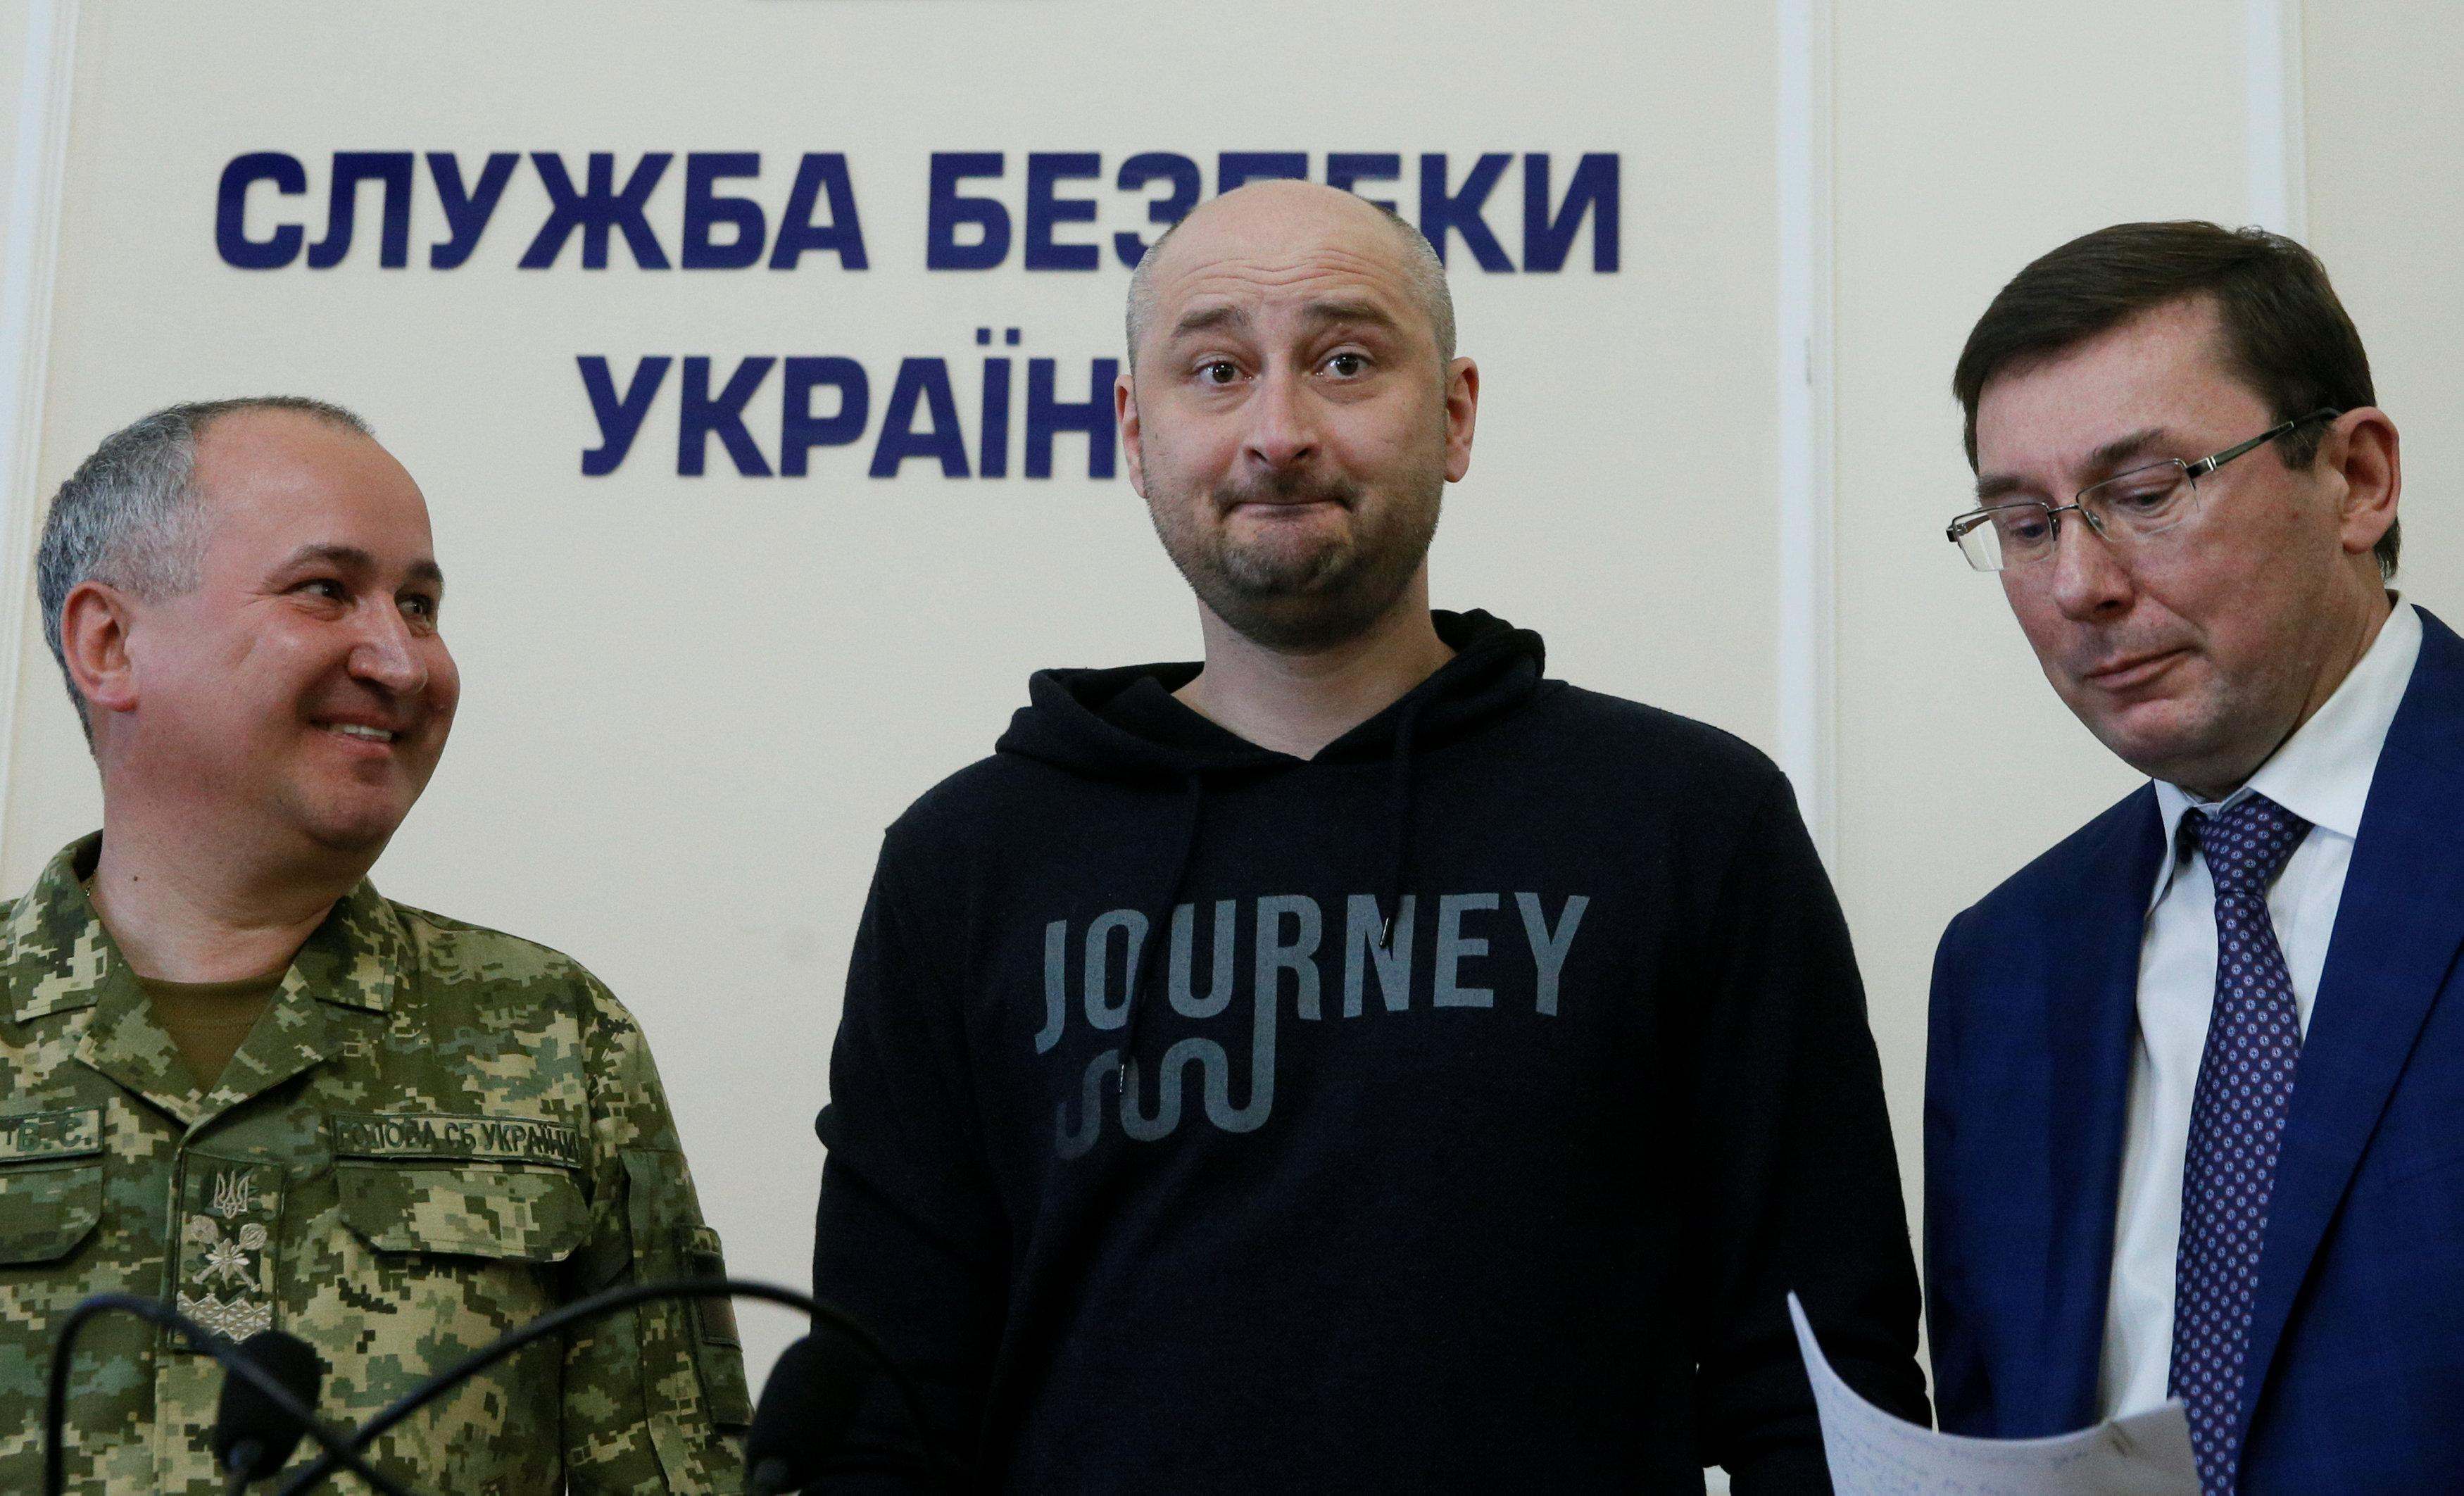 Russian journalist Arkady Babchenko (C), who was reported murdered in the Ukrainian capital on May 29, Ukrainian Prosecutor General Yuriy Lutsenko (R) and head of the state security service (SBU) Vasily Gritsak attend a news briefing in Kiev (Reuters)